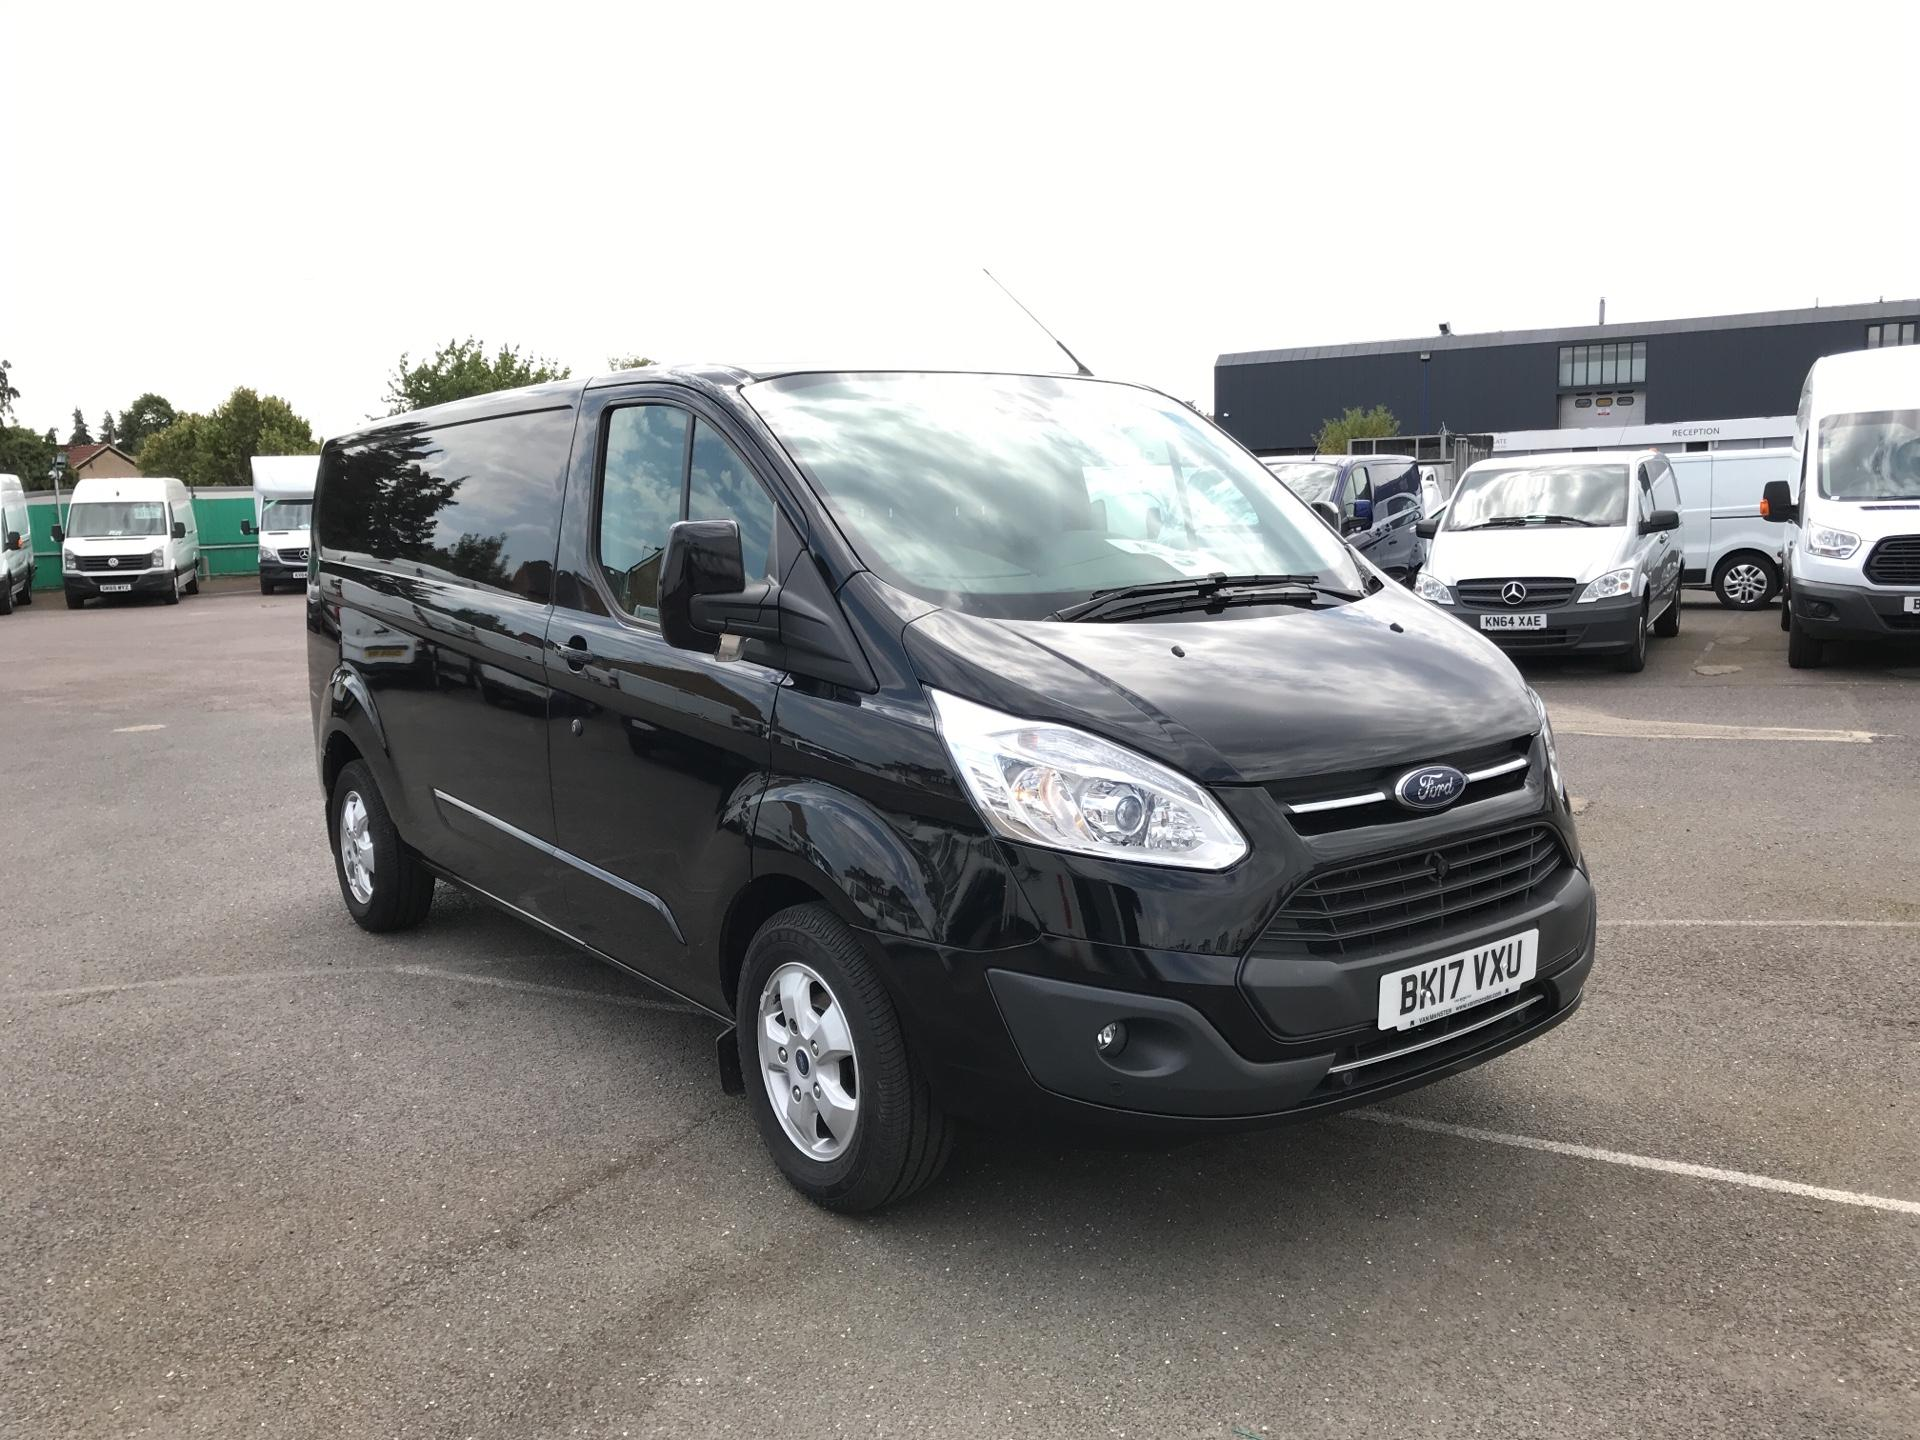 2017 Ford Transit Custom 2.0 Tdci 130Ps Low Roof Limited Van (BK17VXU)